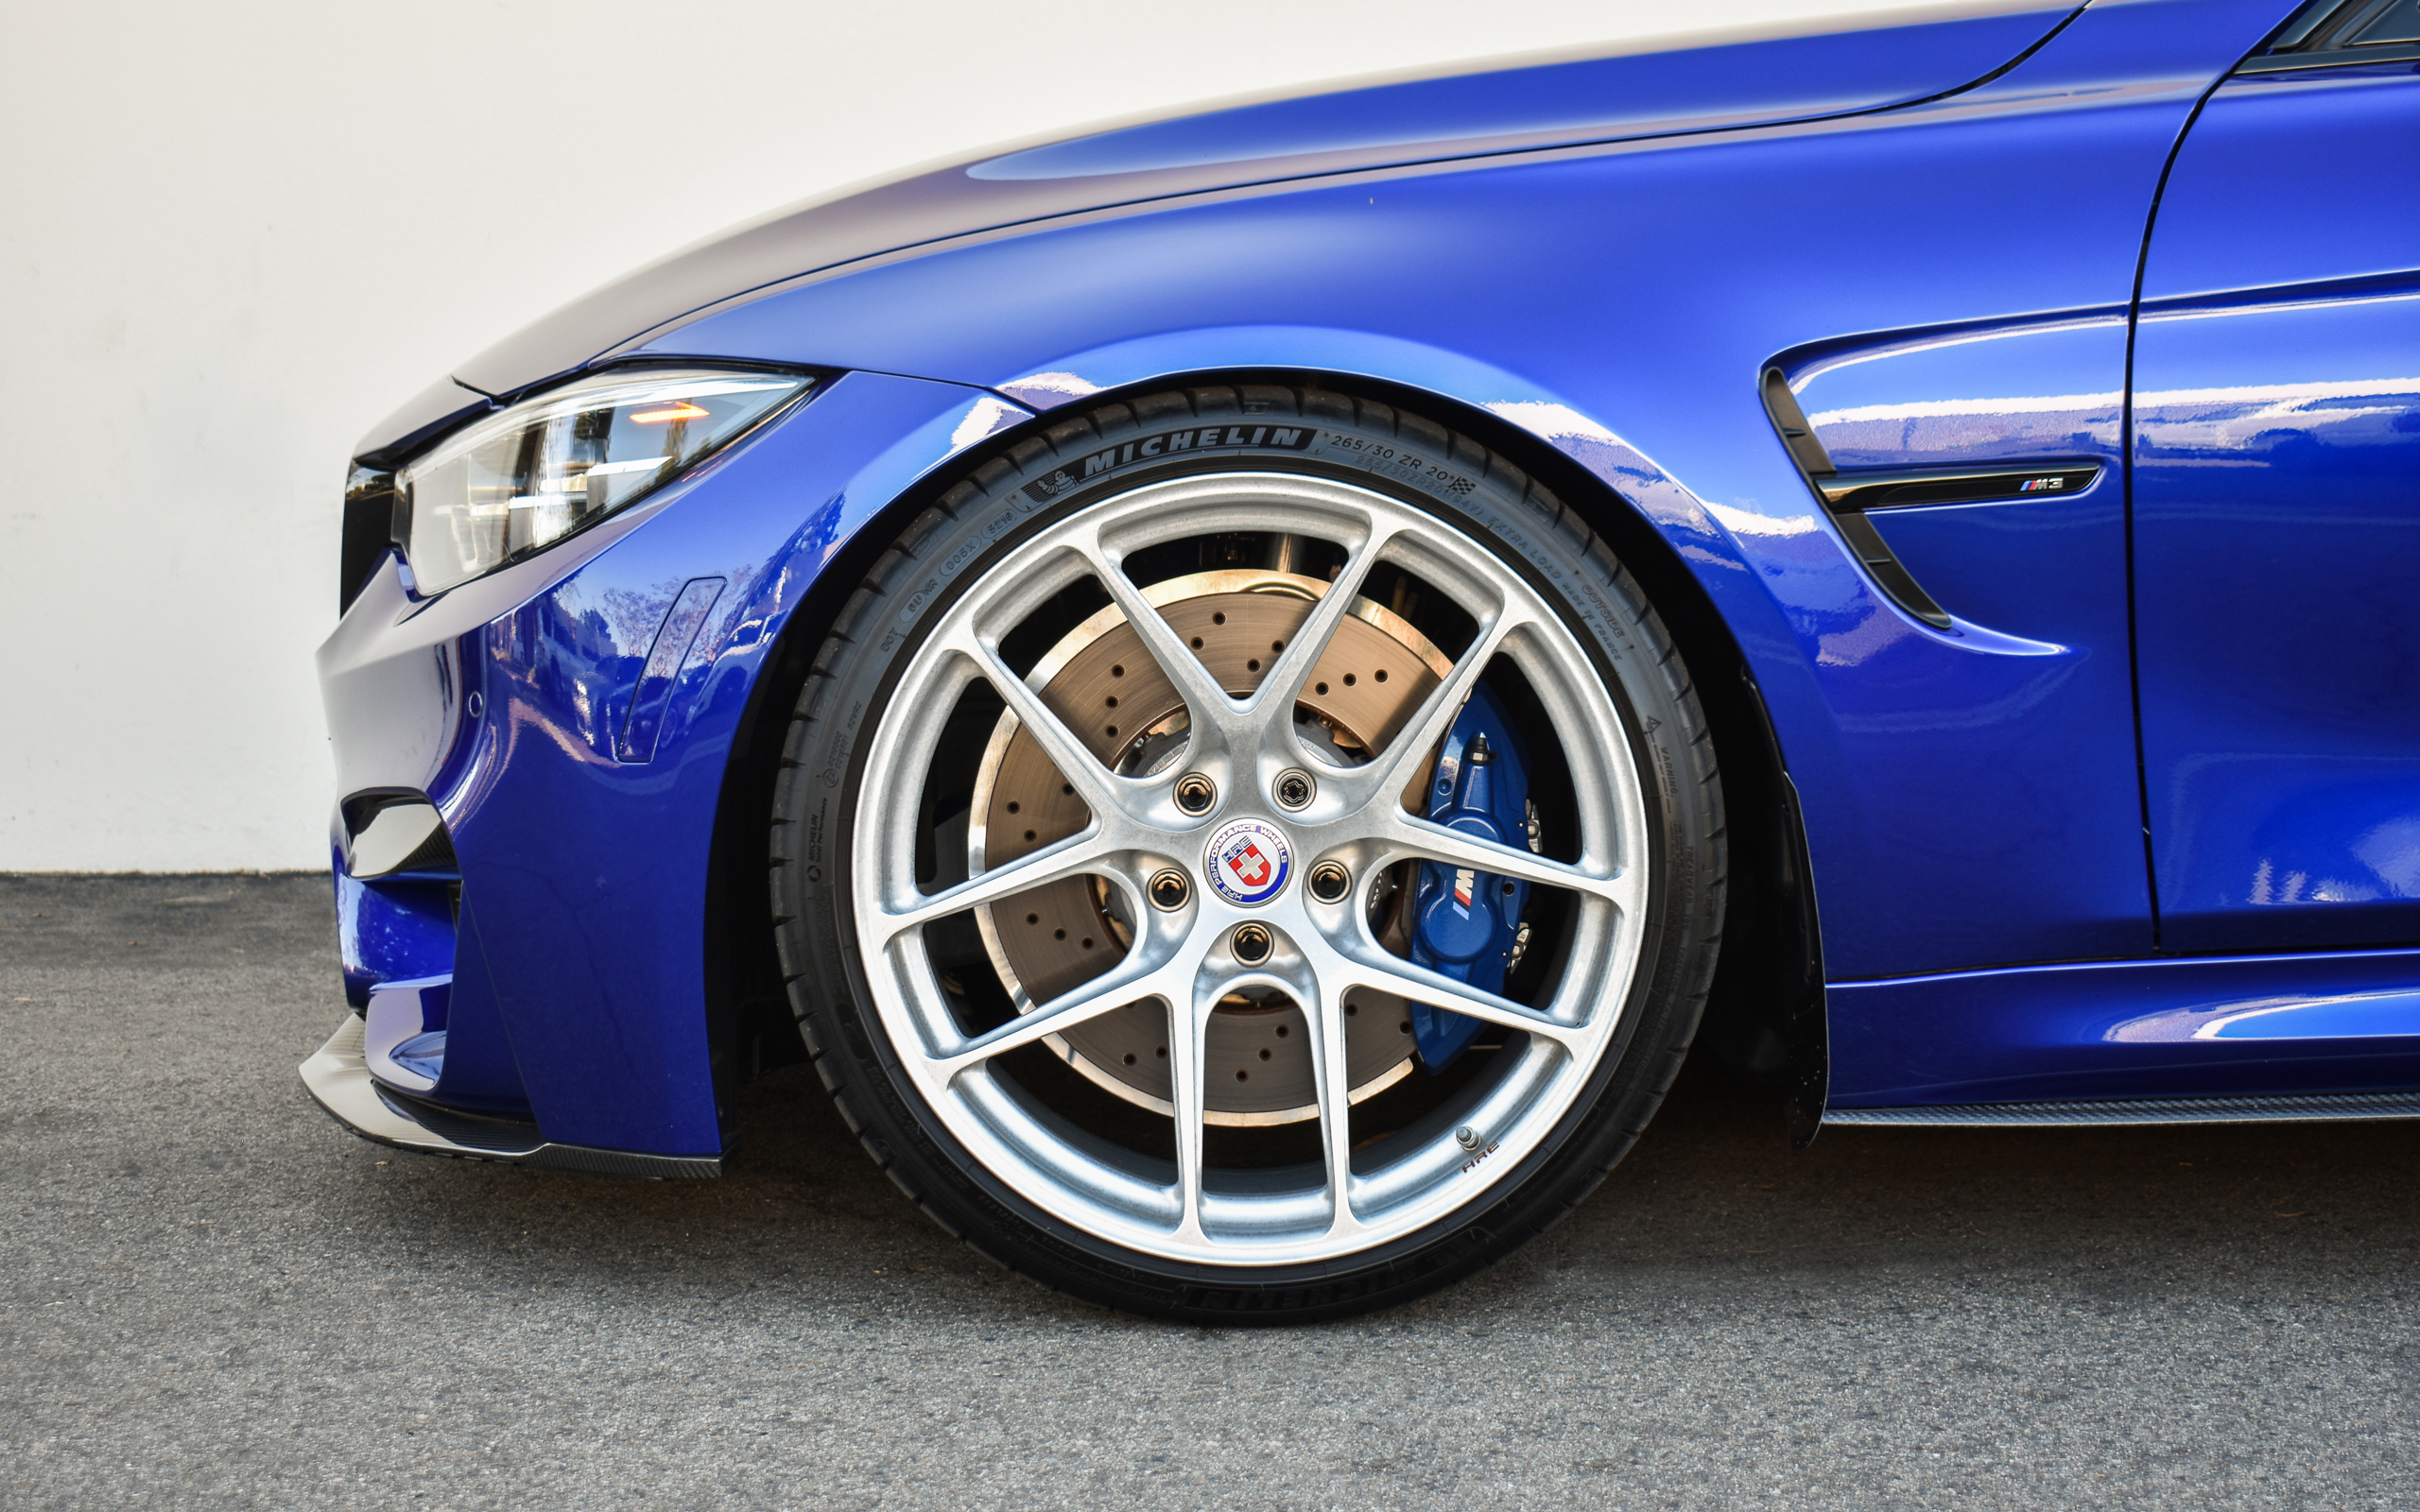 2018 San Marino Blue F80 M3 CS - HRE R101 (Stone Finish)